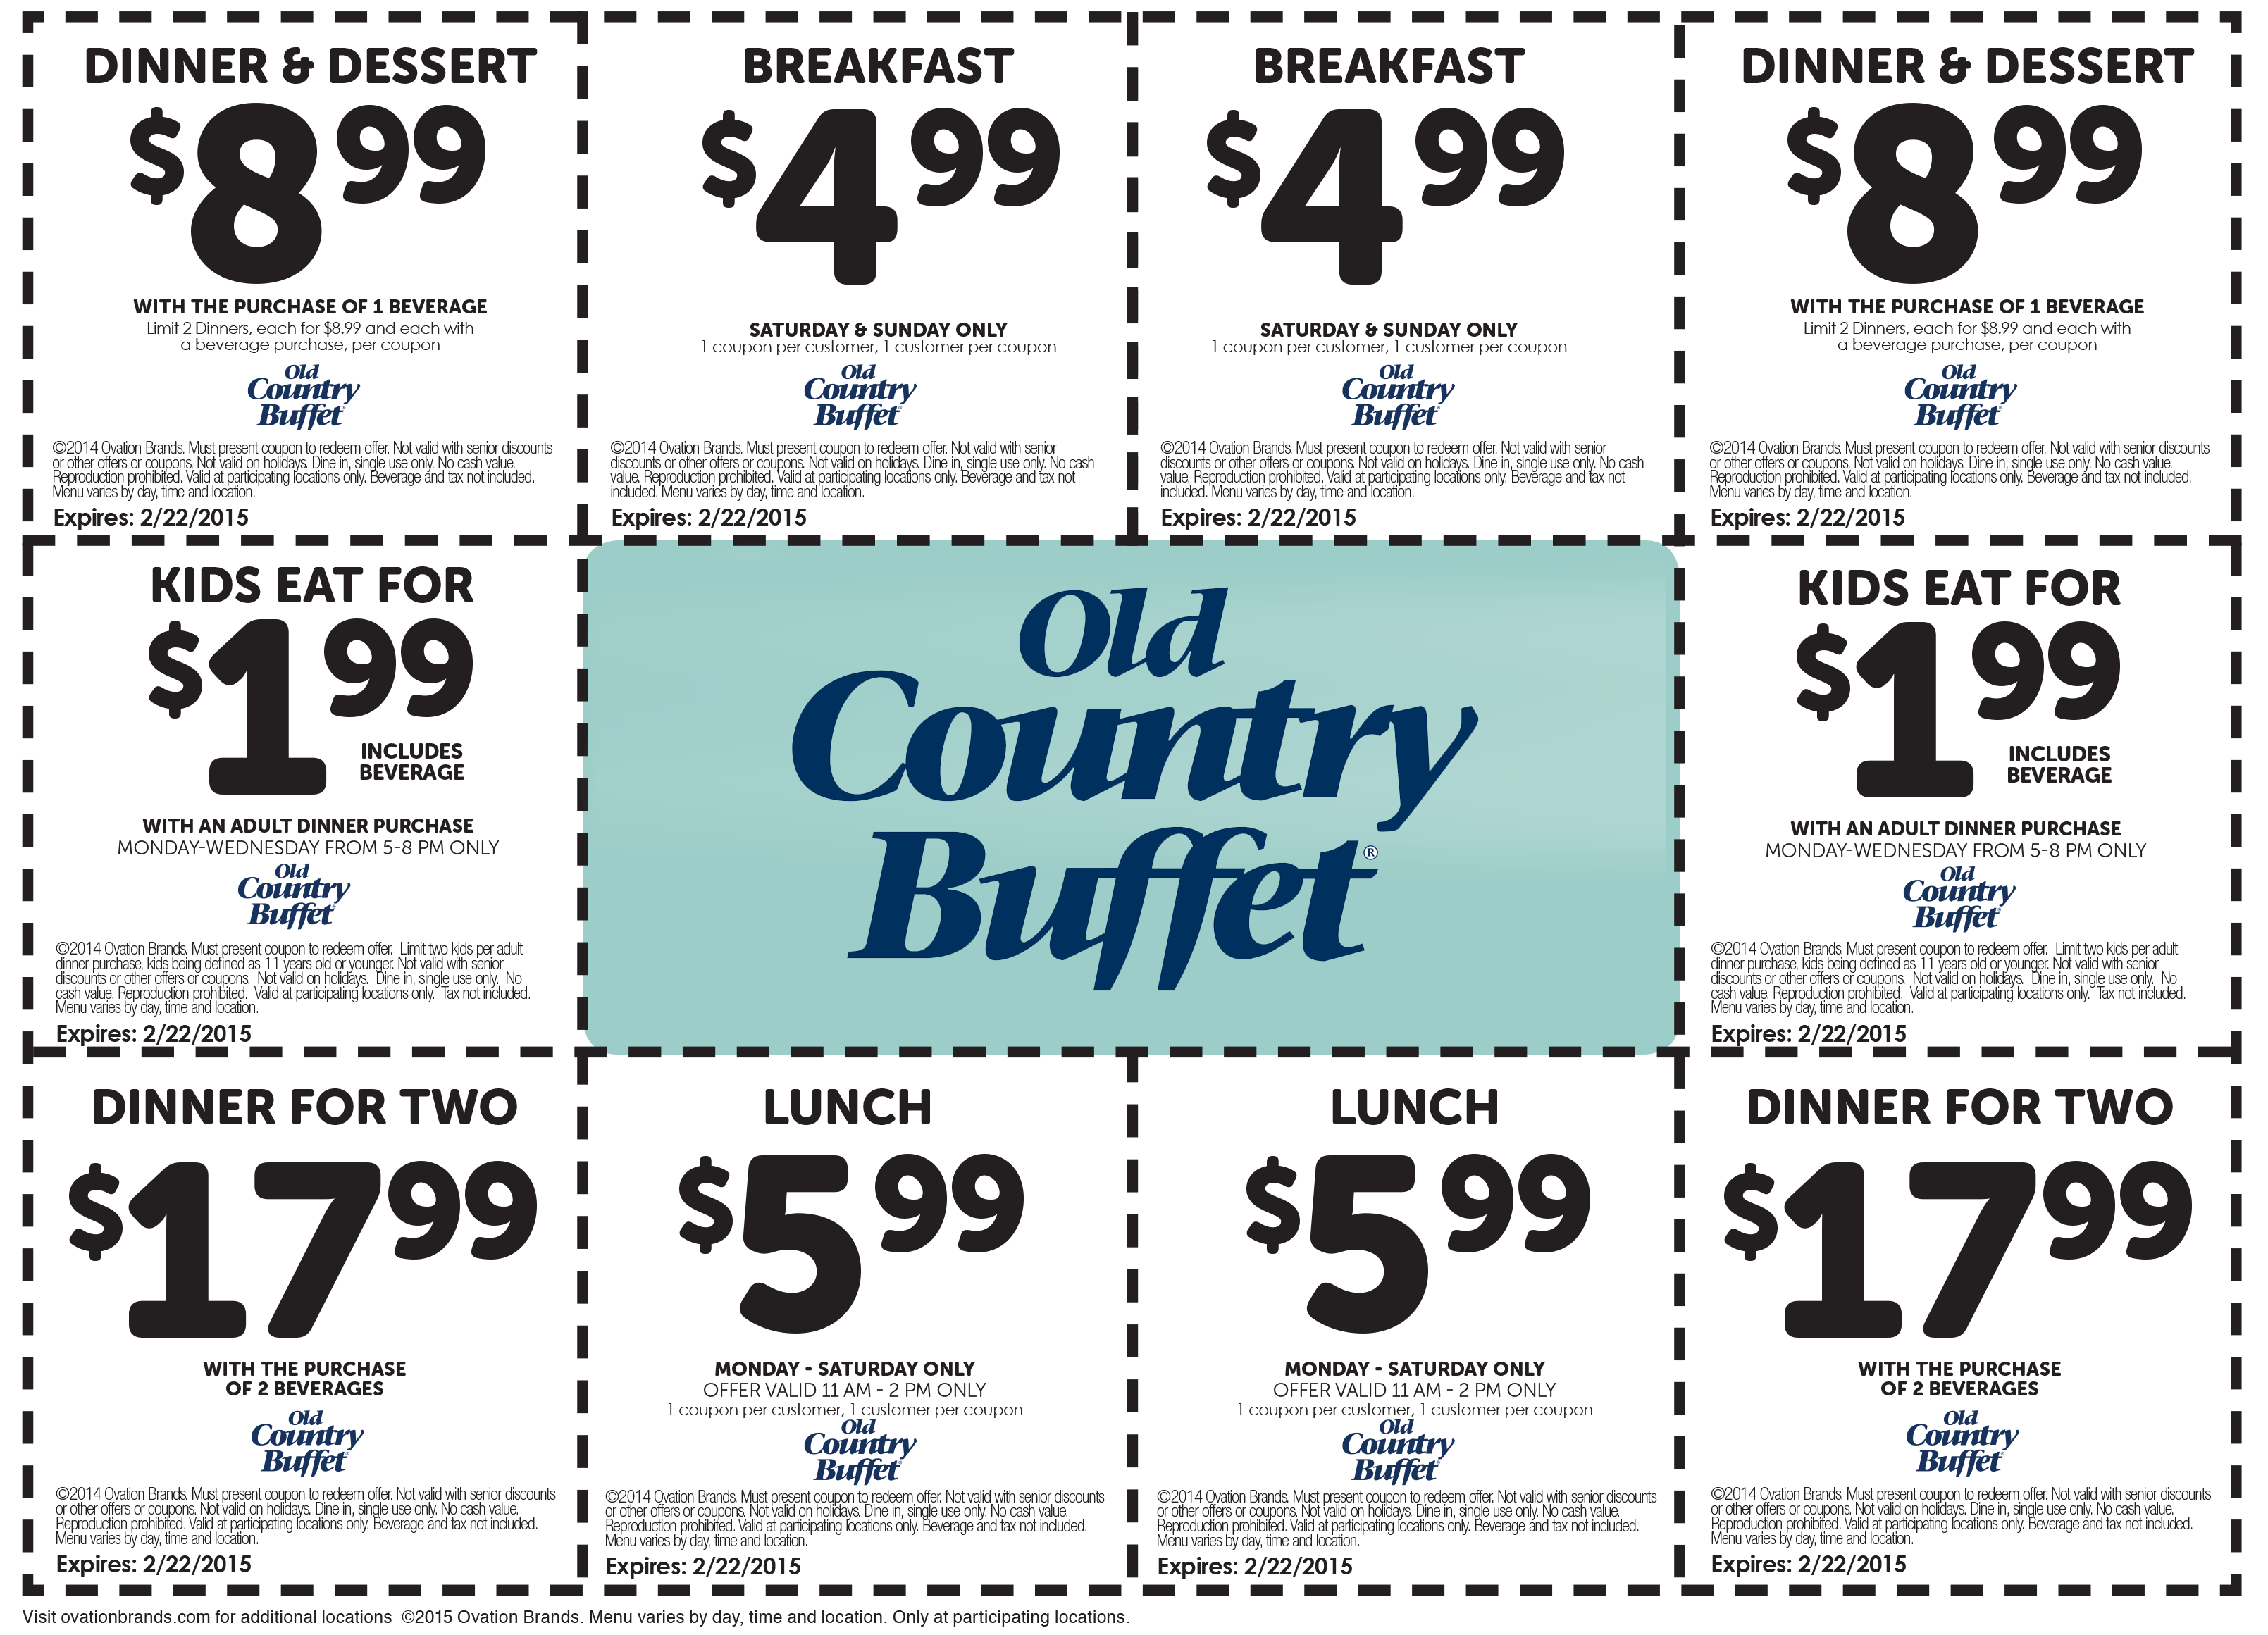 Old Country Buffet Coupon December 2016 $5 breakfast, $6 lunch & more at Old Country Buffet